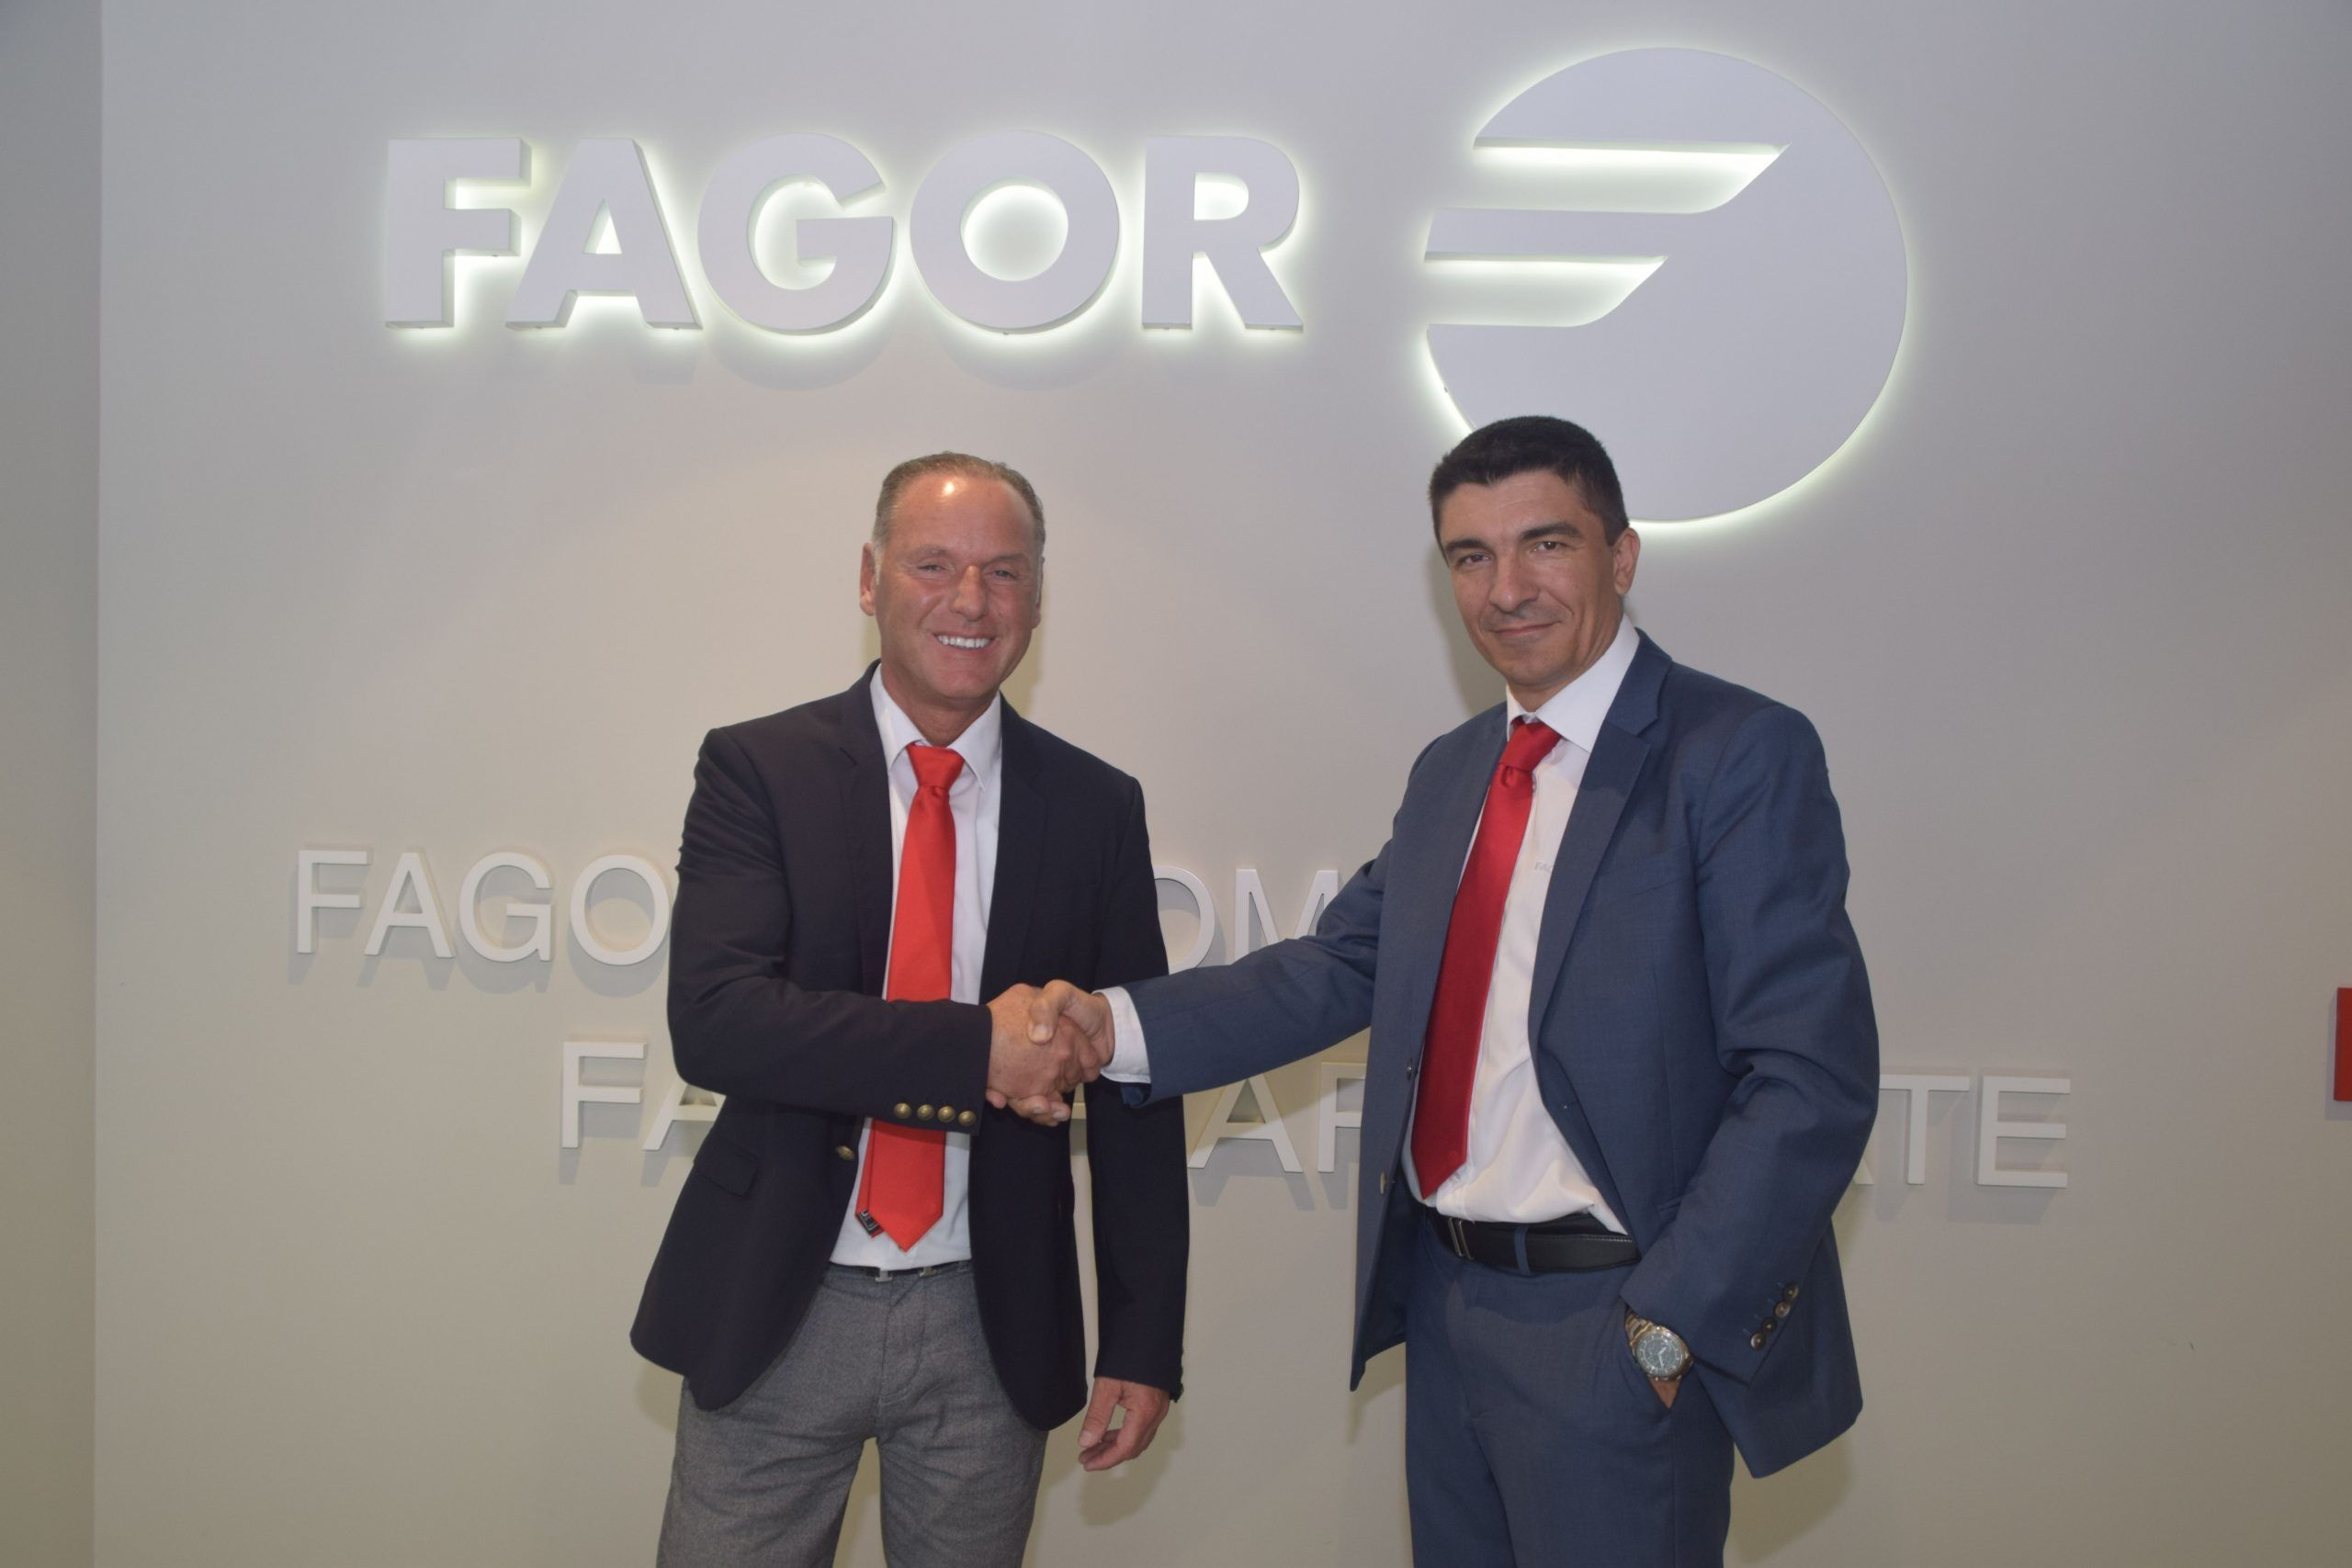 Fagor Arrasate event: FAGOR ARRASATE BOOSTS ITS COMMITMENT TO HOT STAMPING WITH THE SIGNING OF GERALD SCHULZ